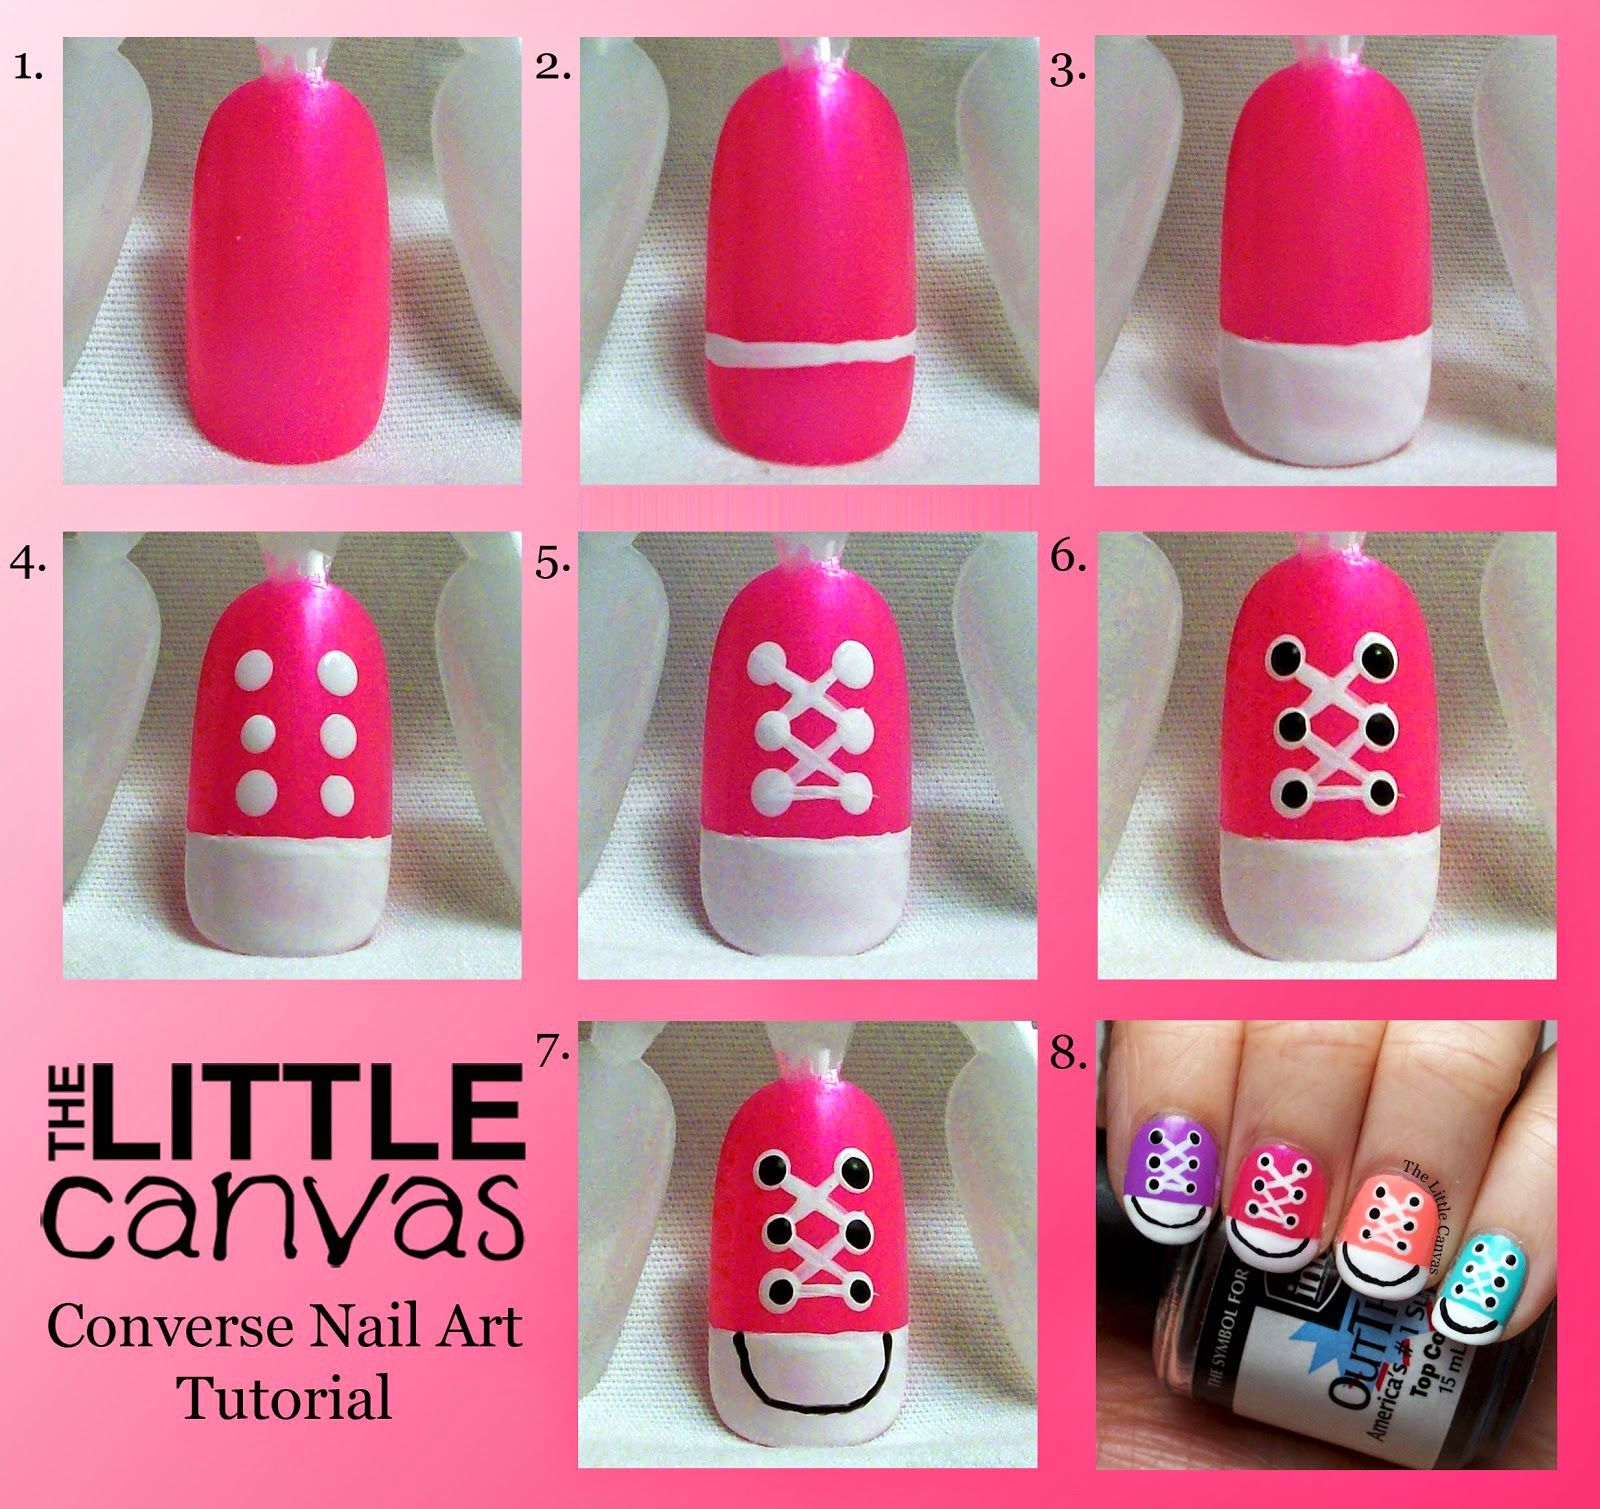 Nail Art Simple Step By Step: Converse Nail Art Step By Step